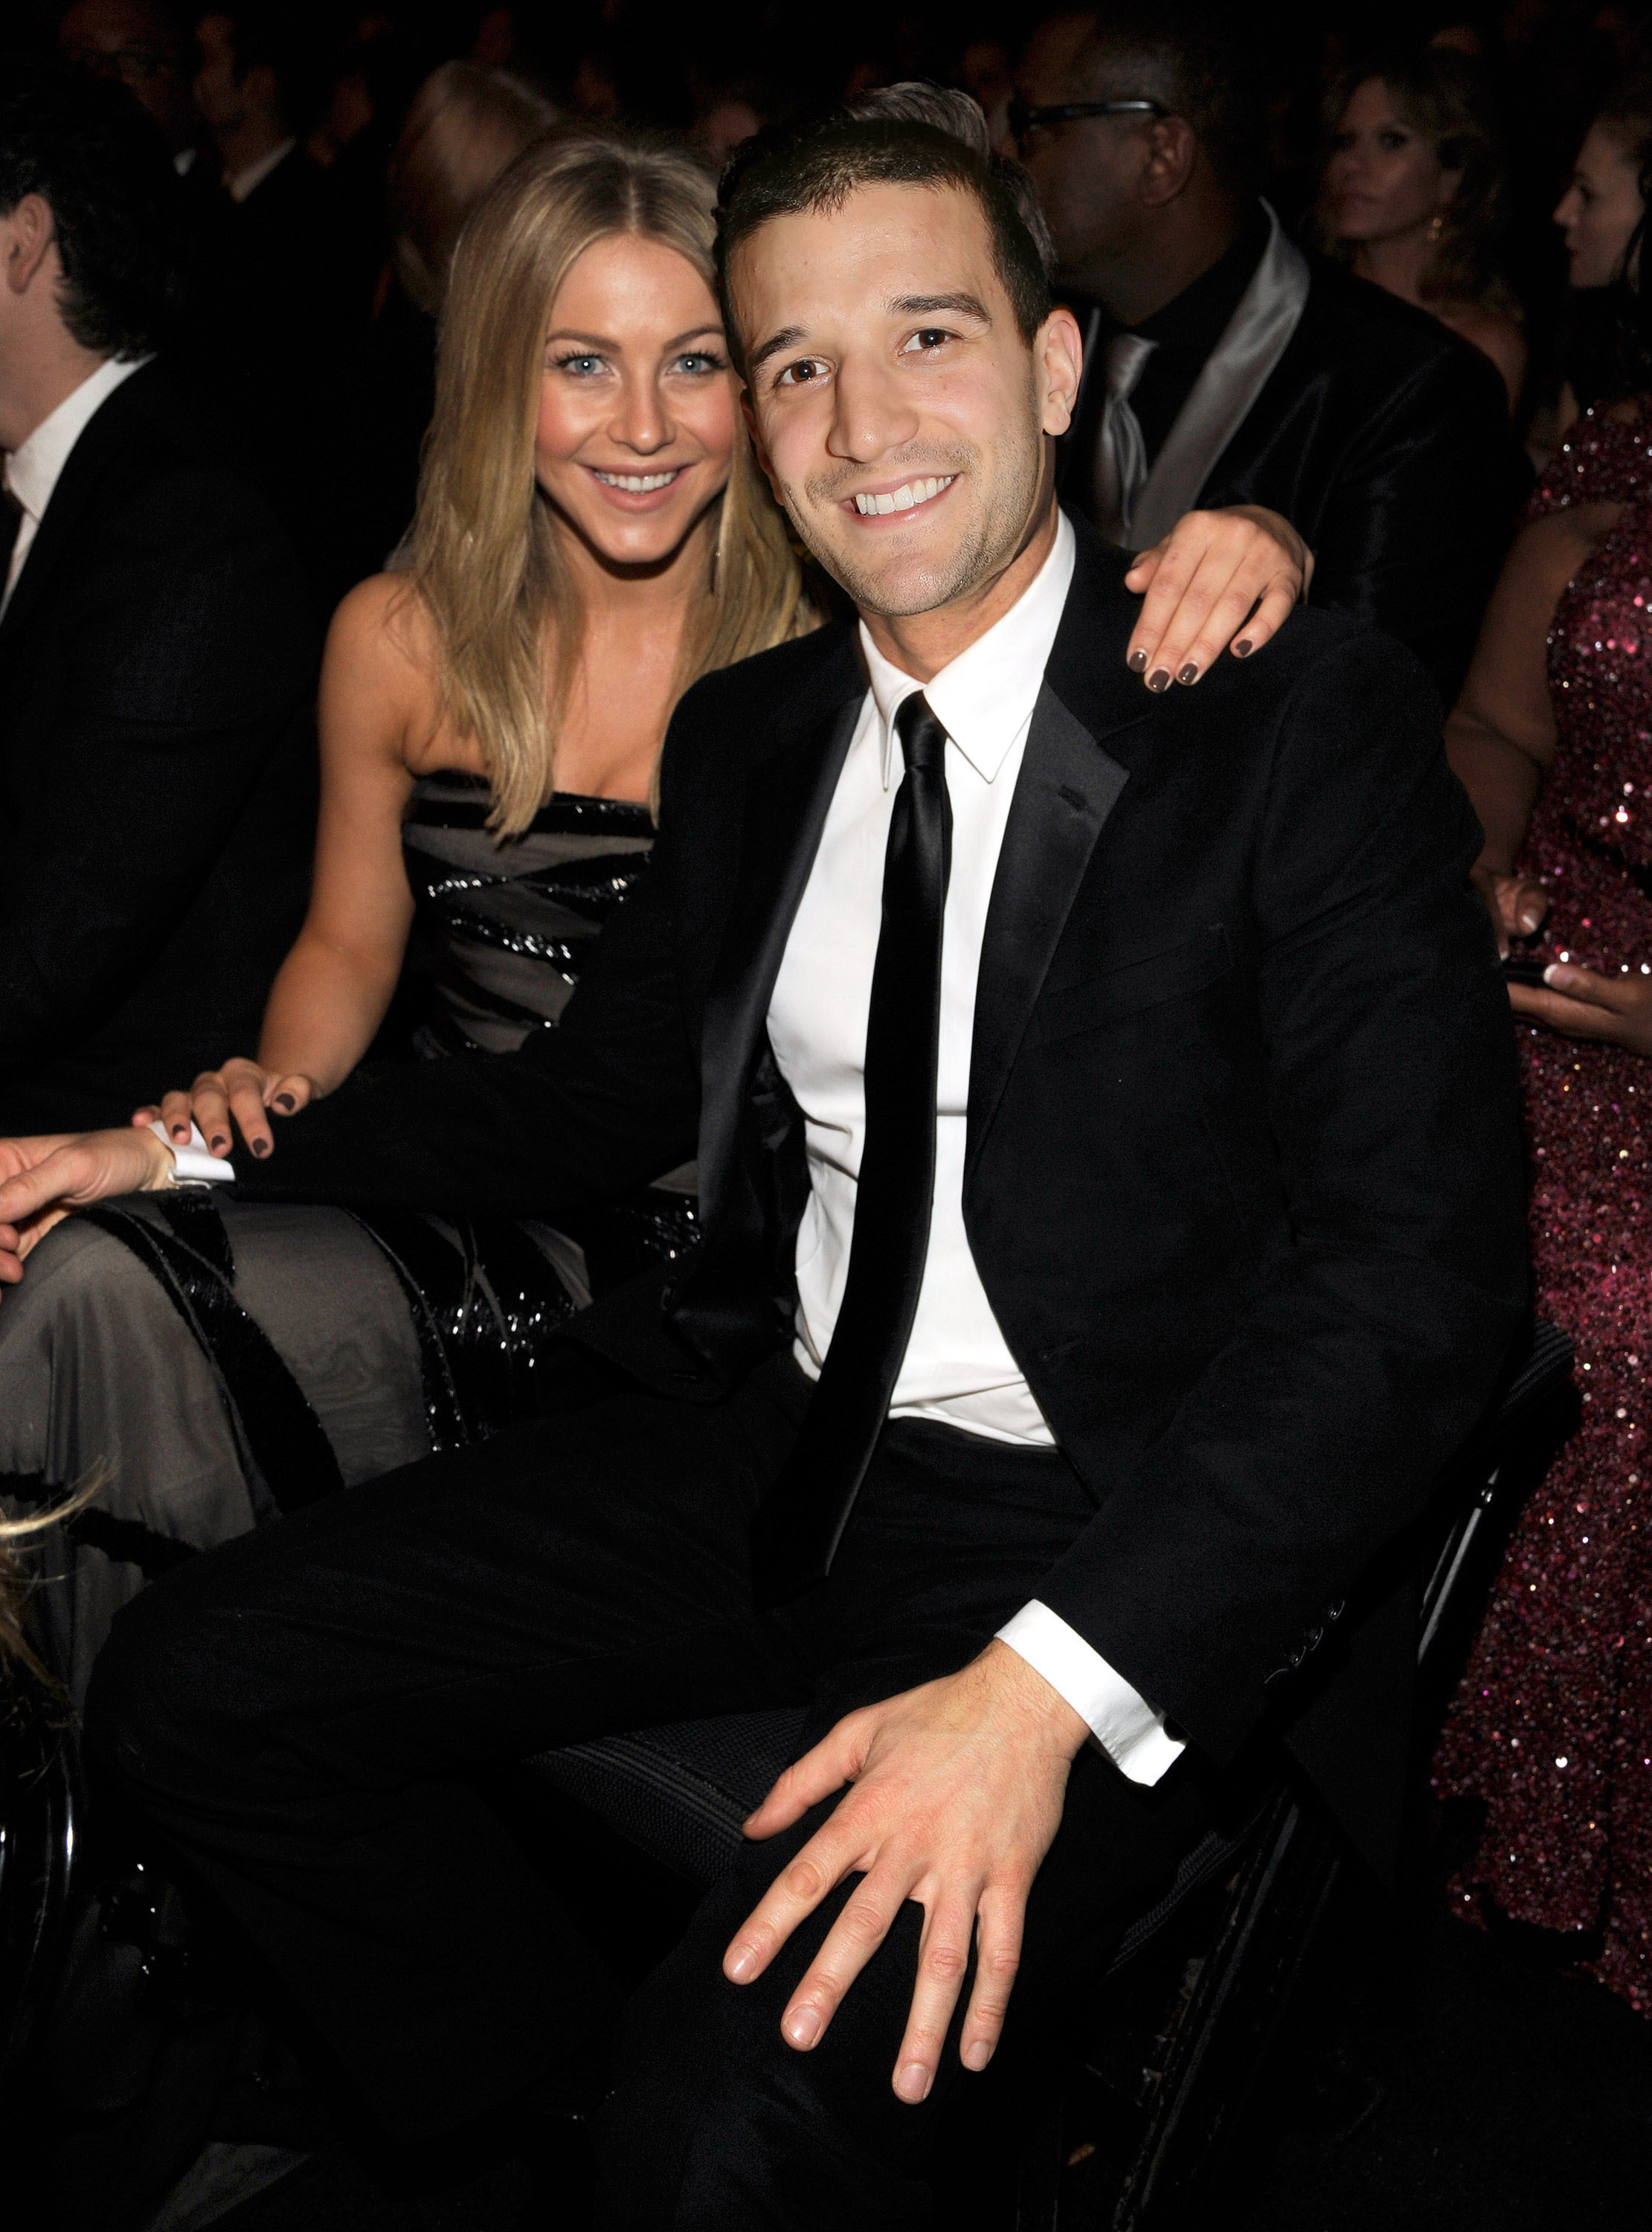 Mark Ballas and Julianne Hough